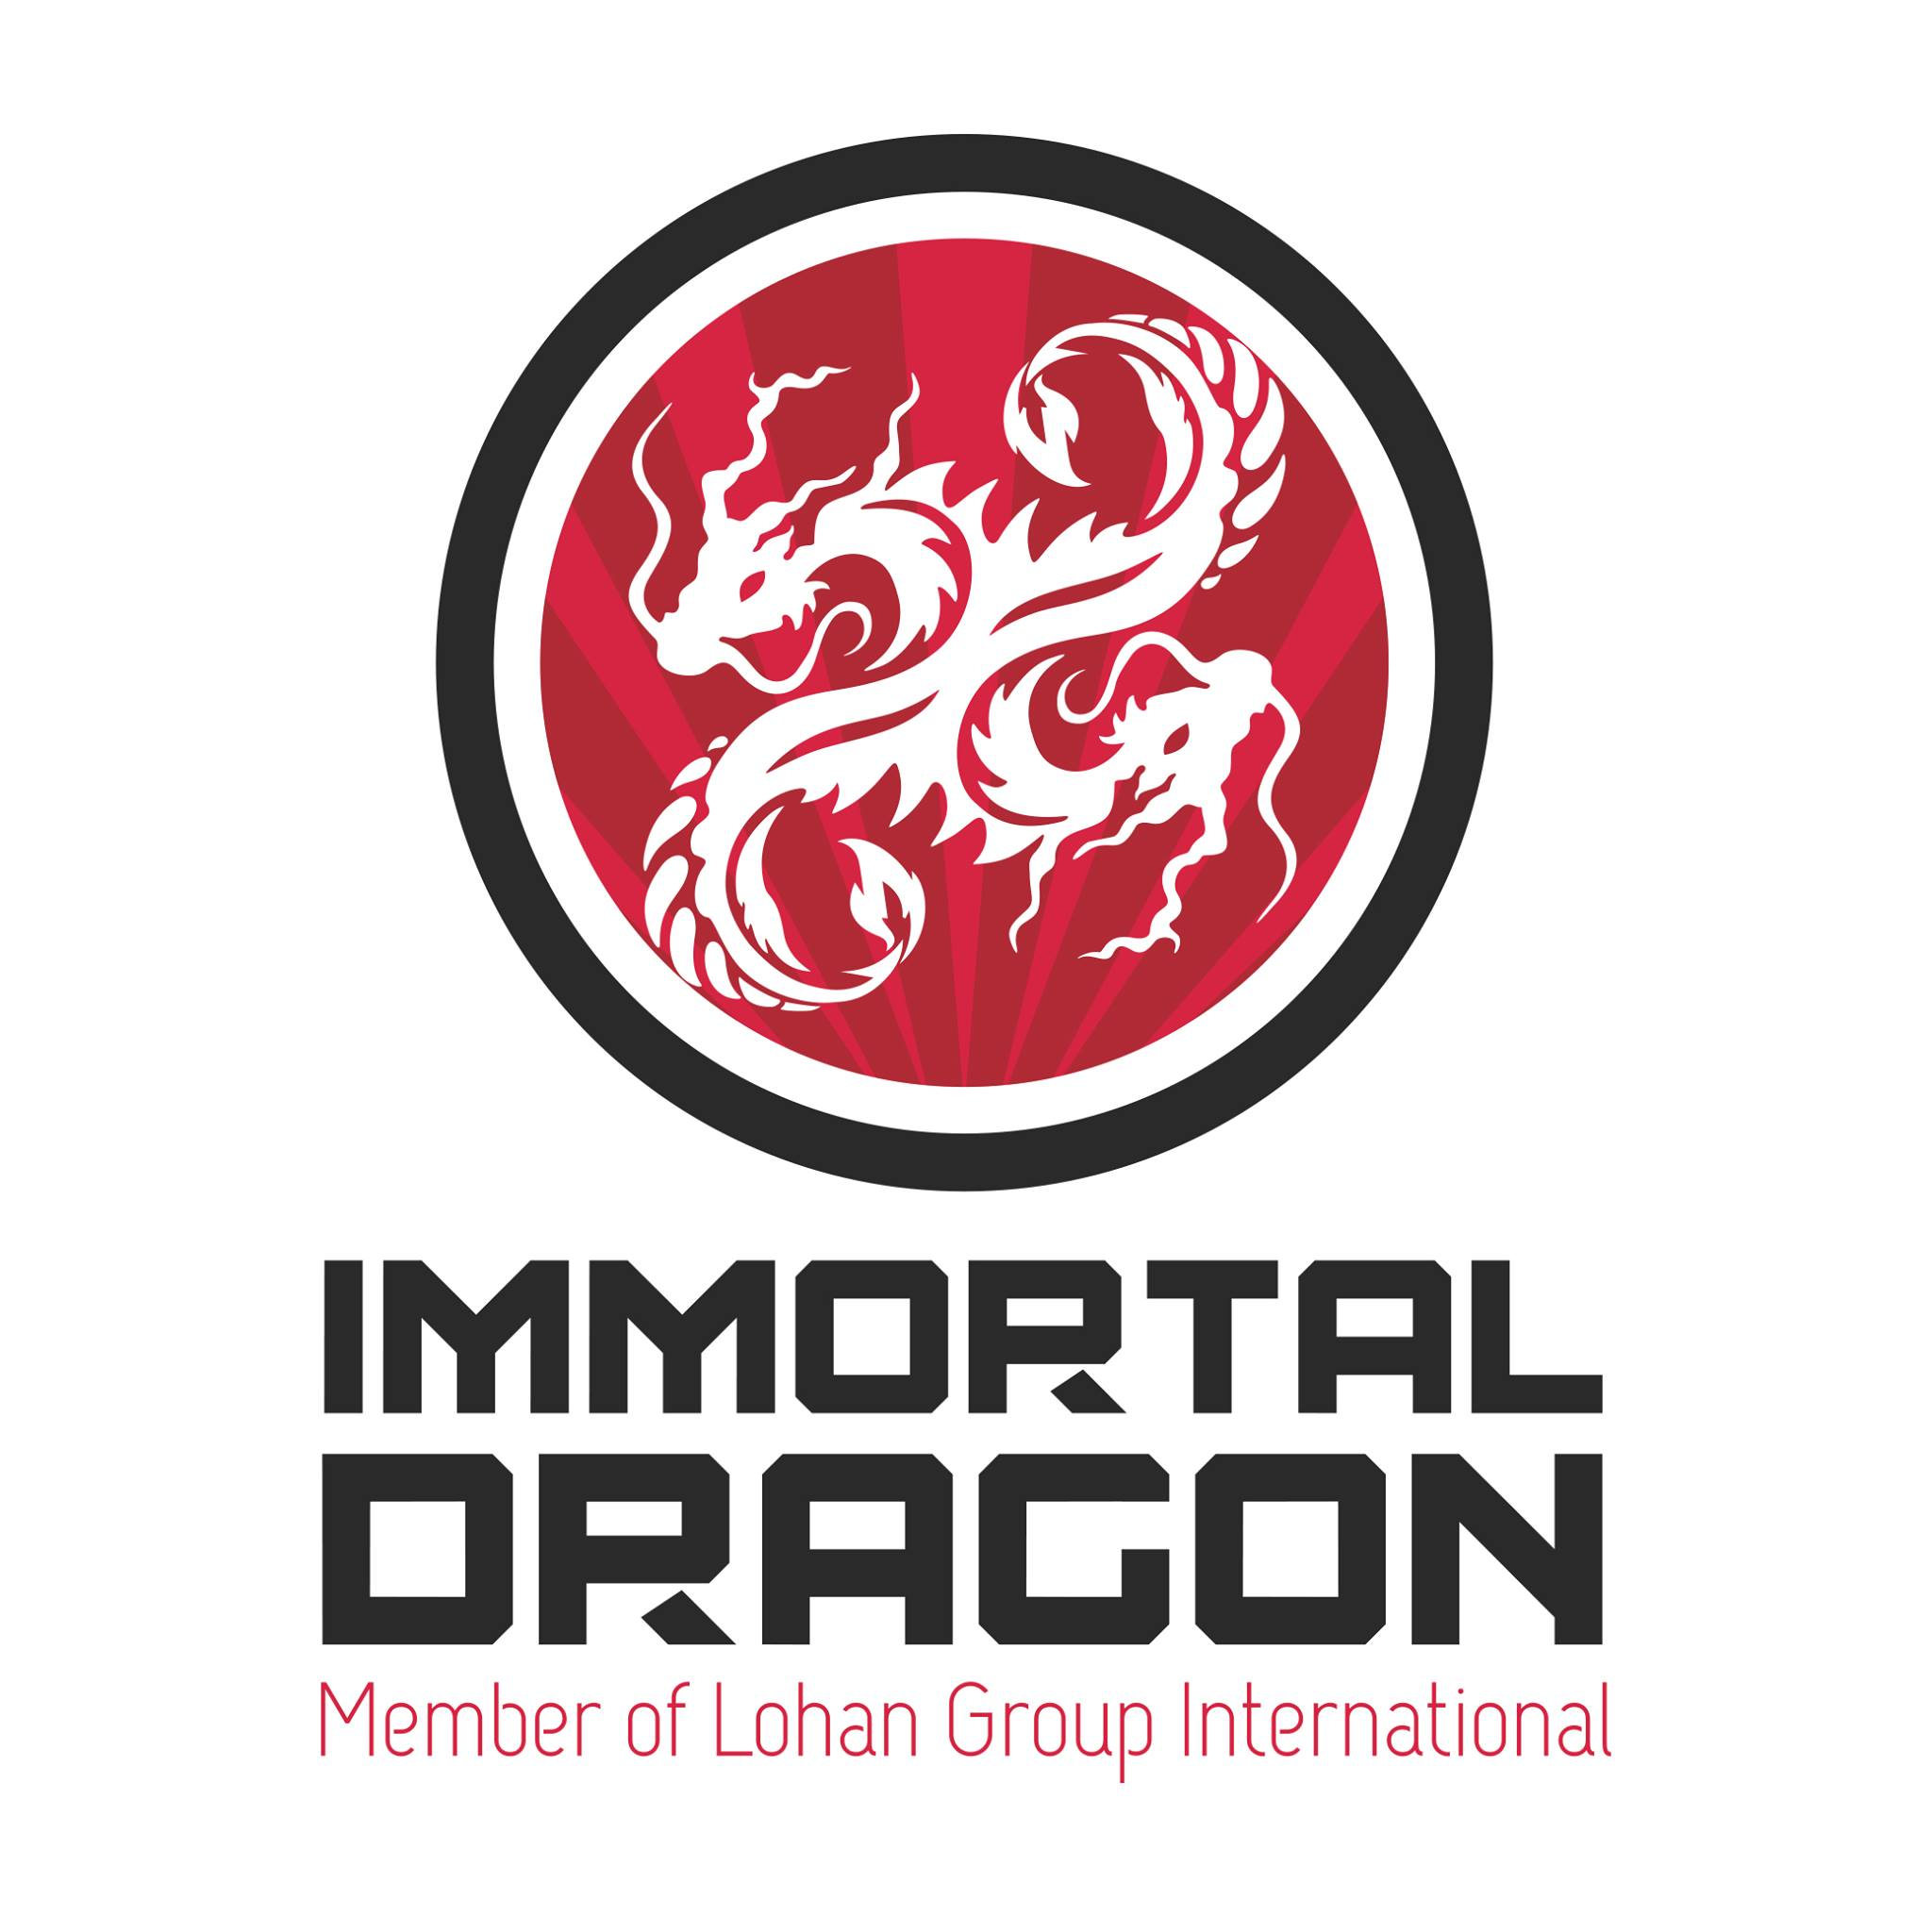 Immortal Dragon